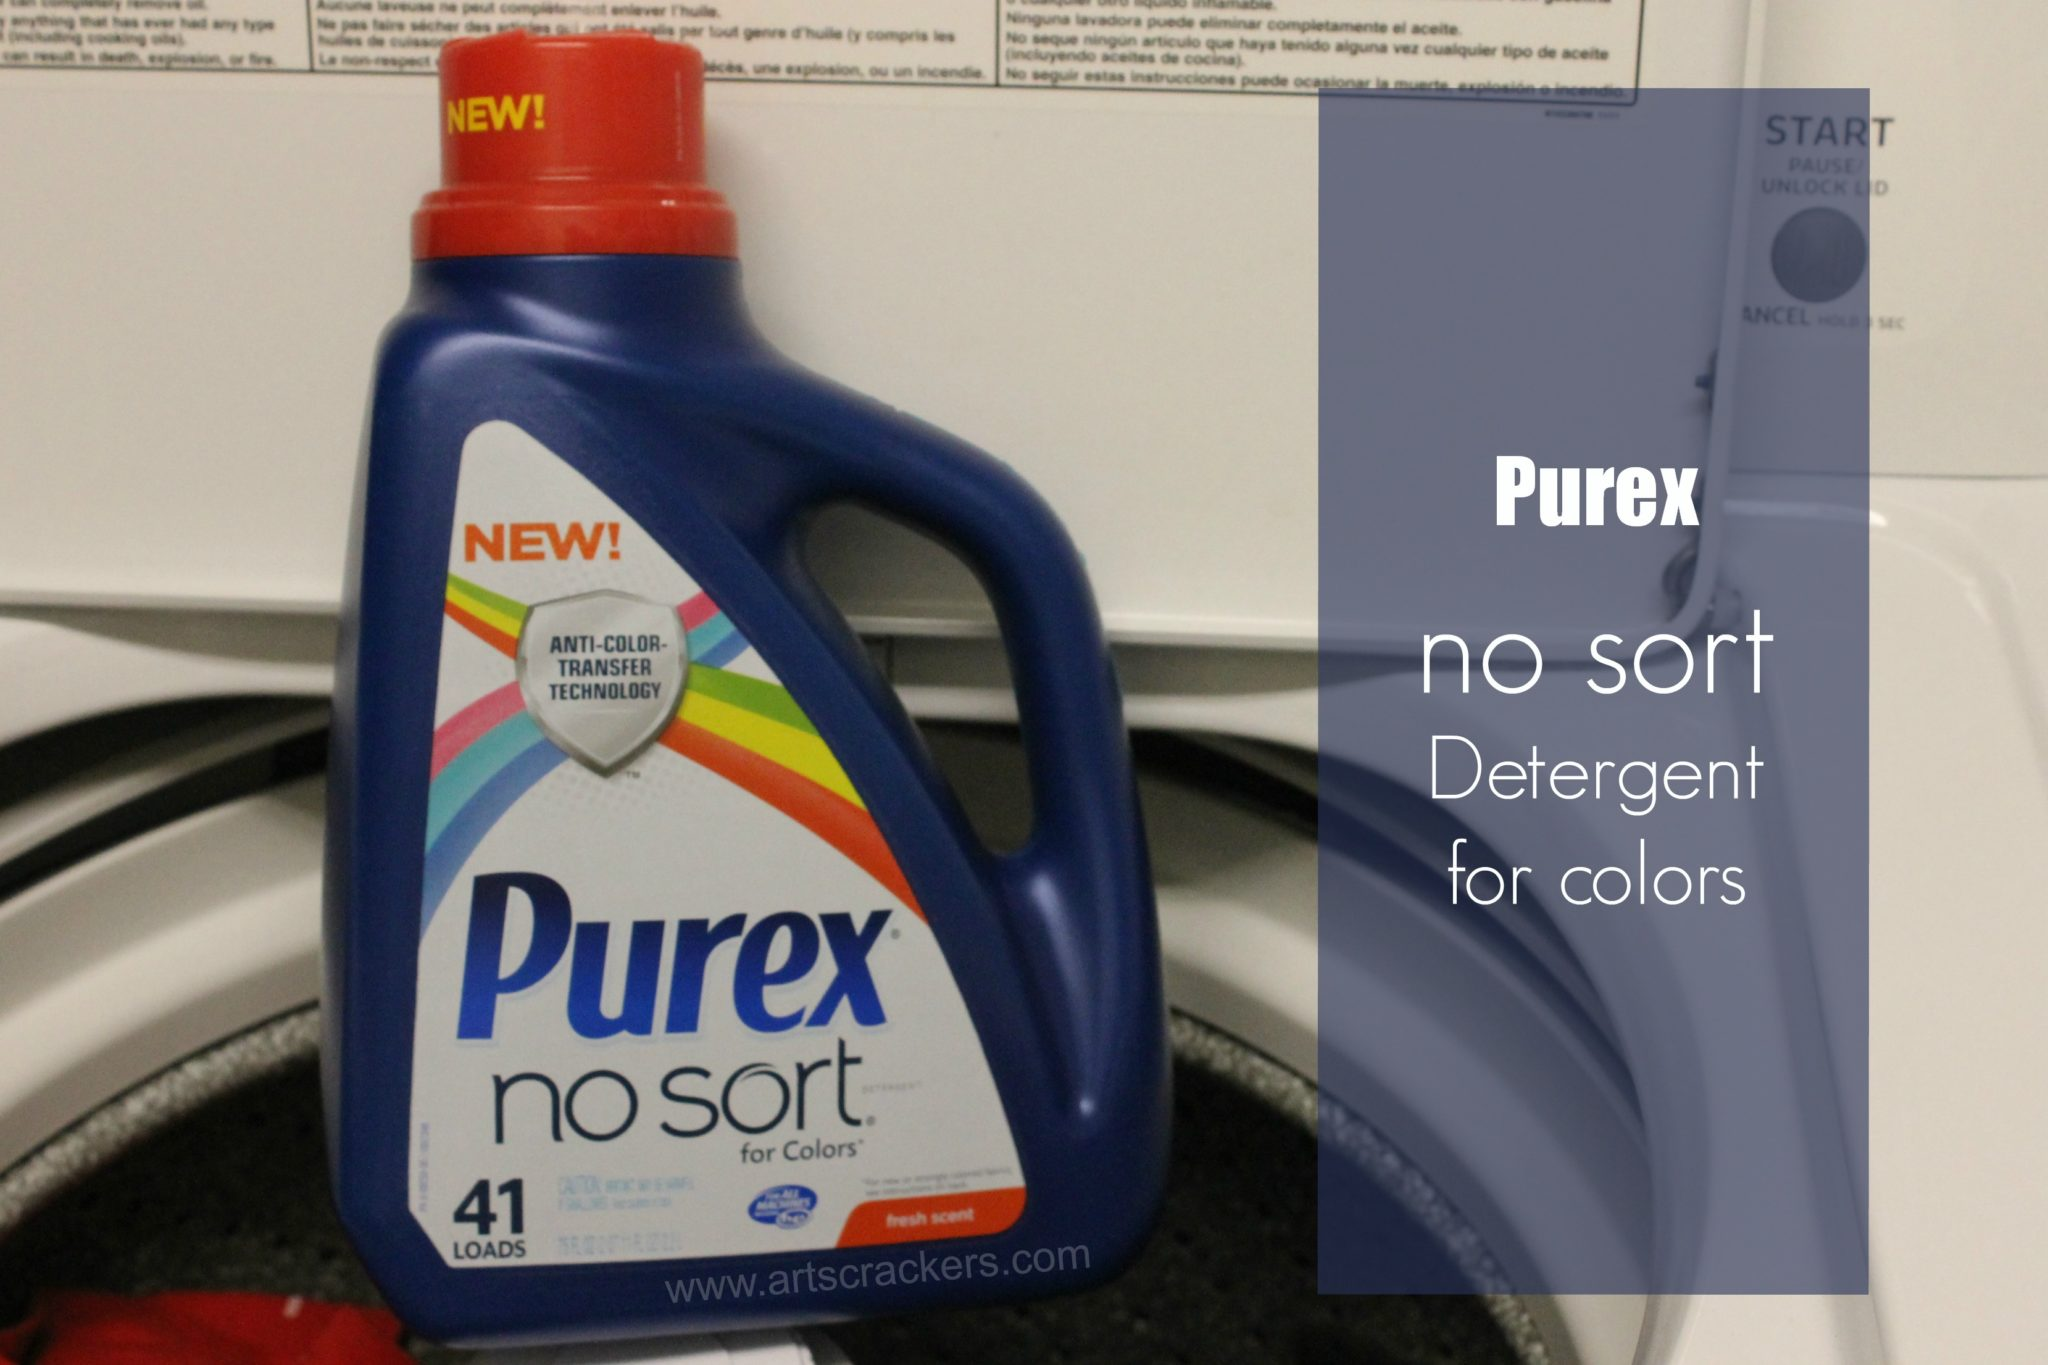 purex no sort detergent